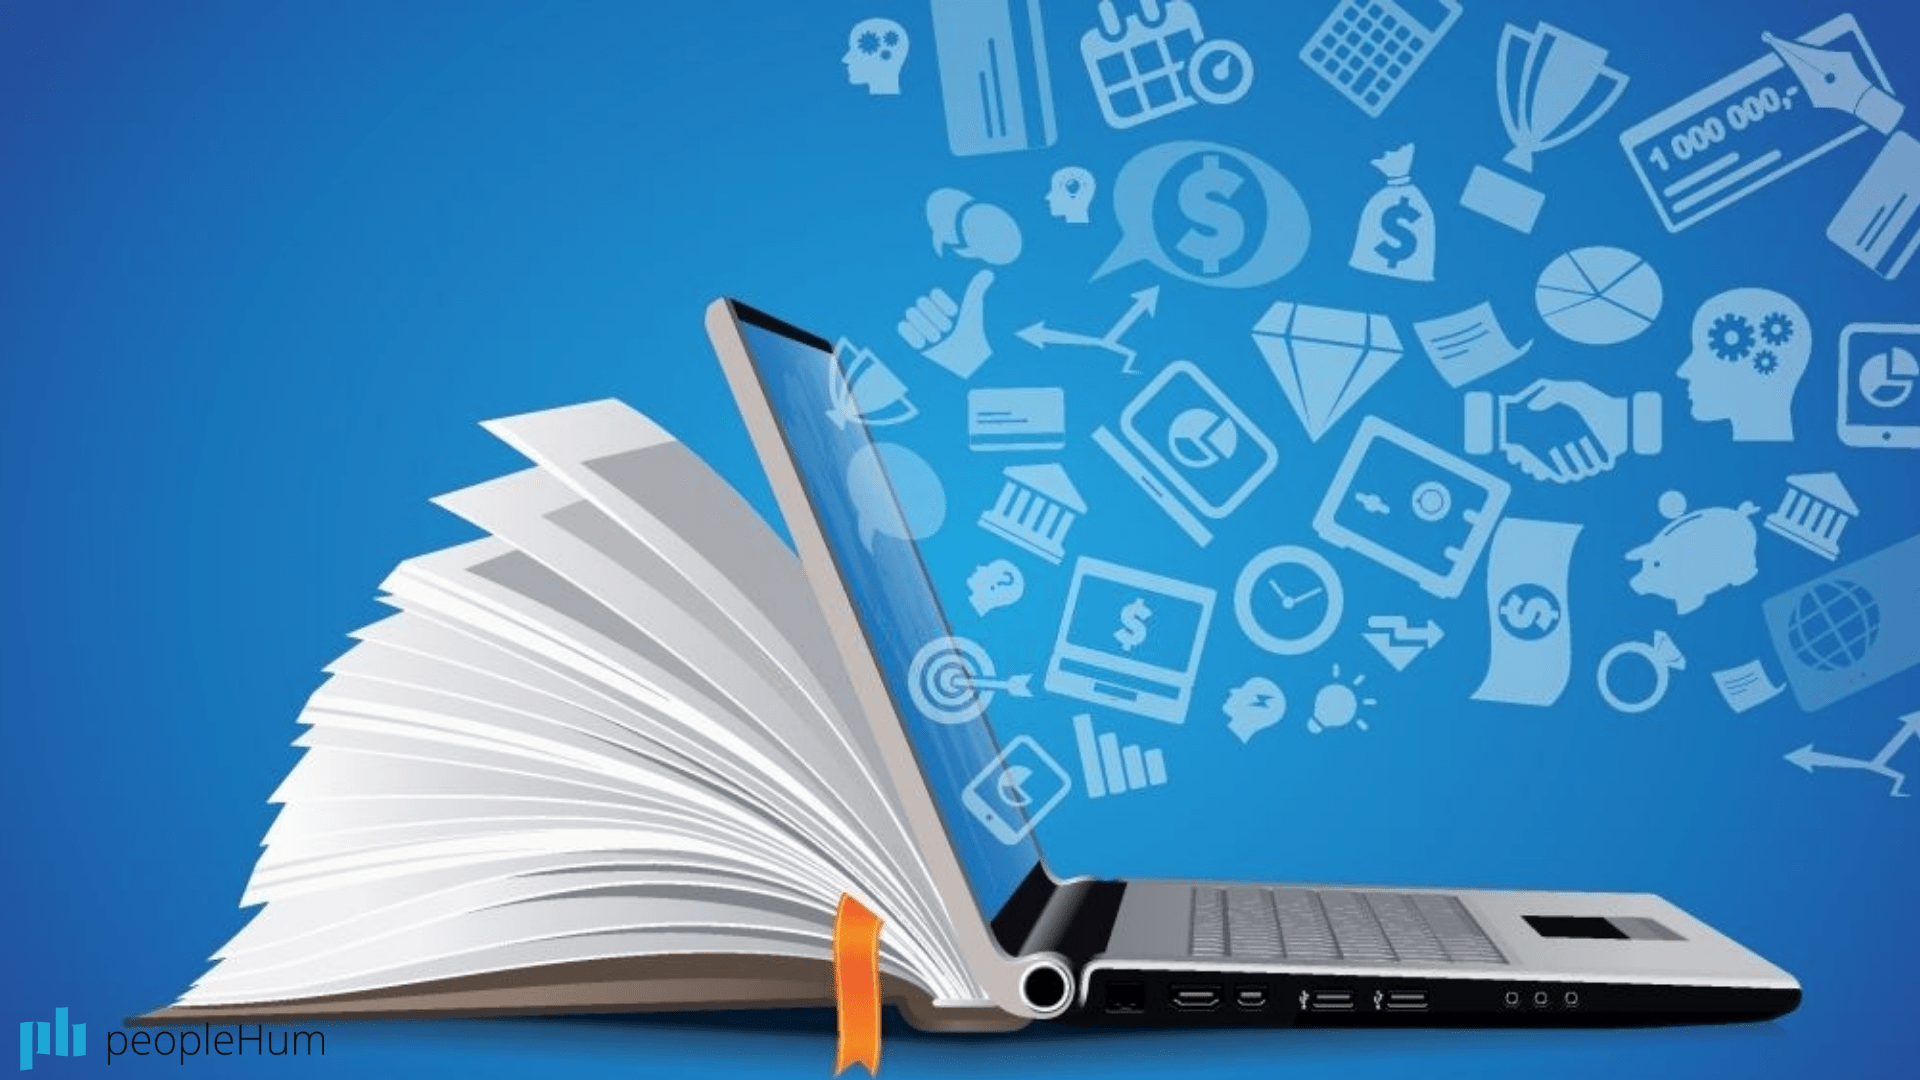 The top 3 books and gadgets that everyone must have!